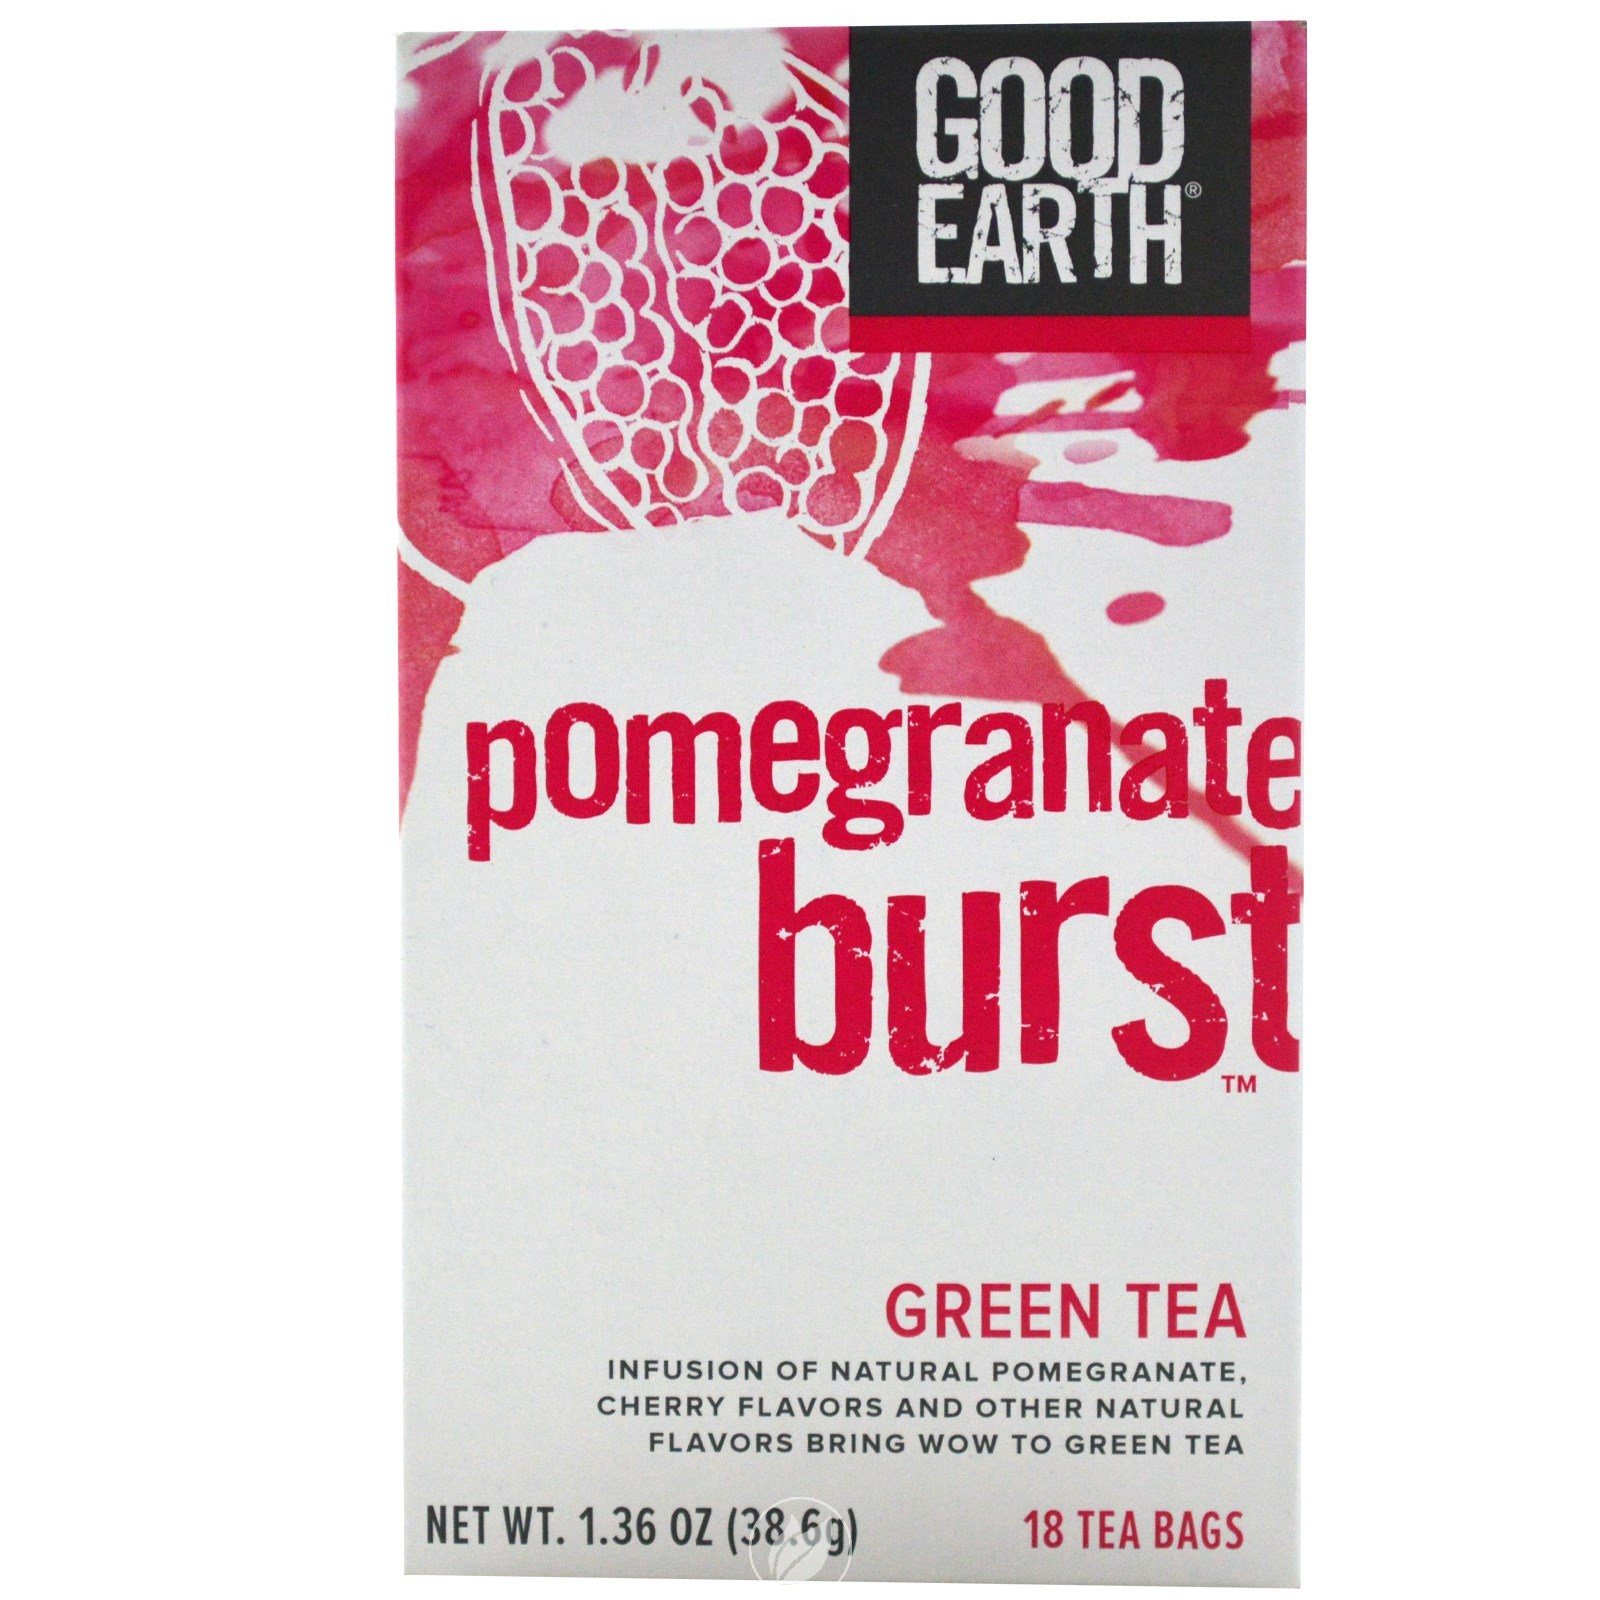 Good Earth Teas Pomegranate Burst Green Tea 18 Bag, Pack of 2